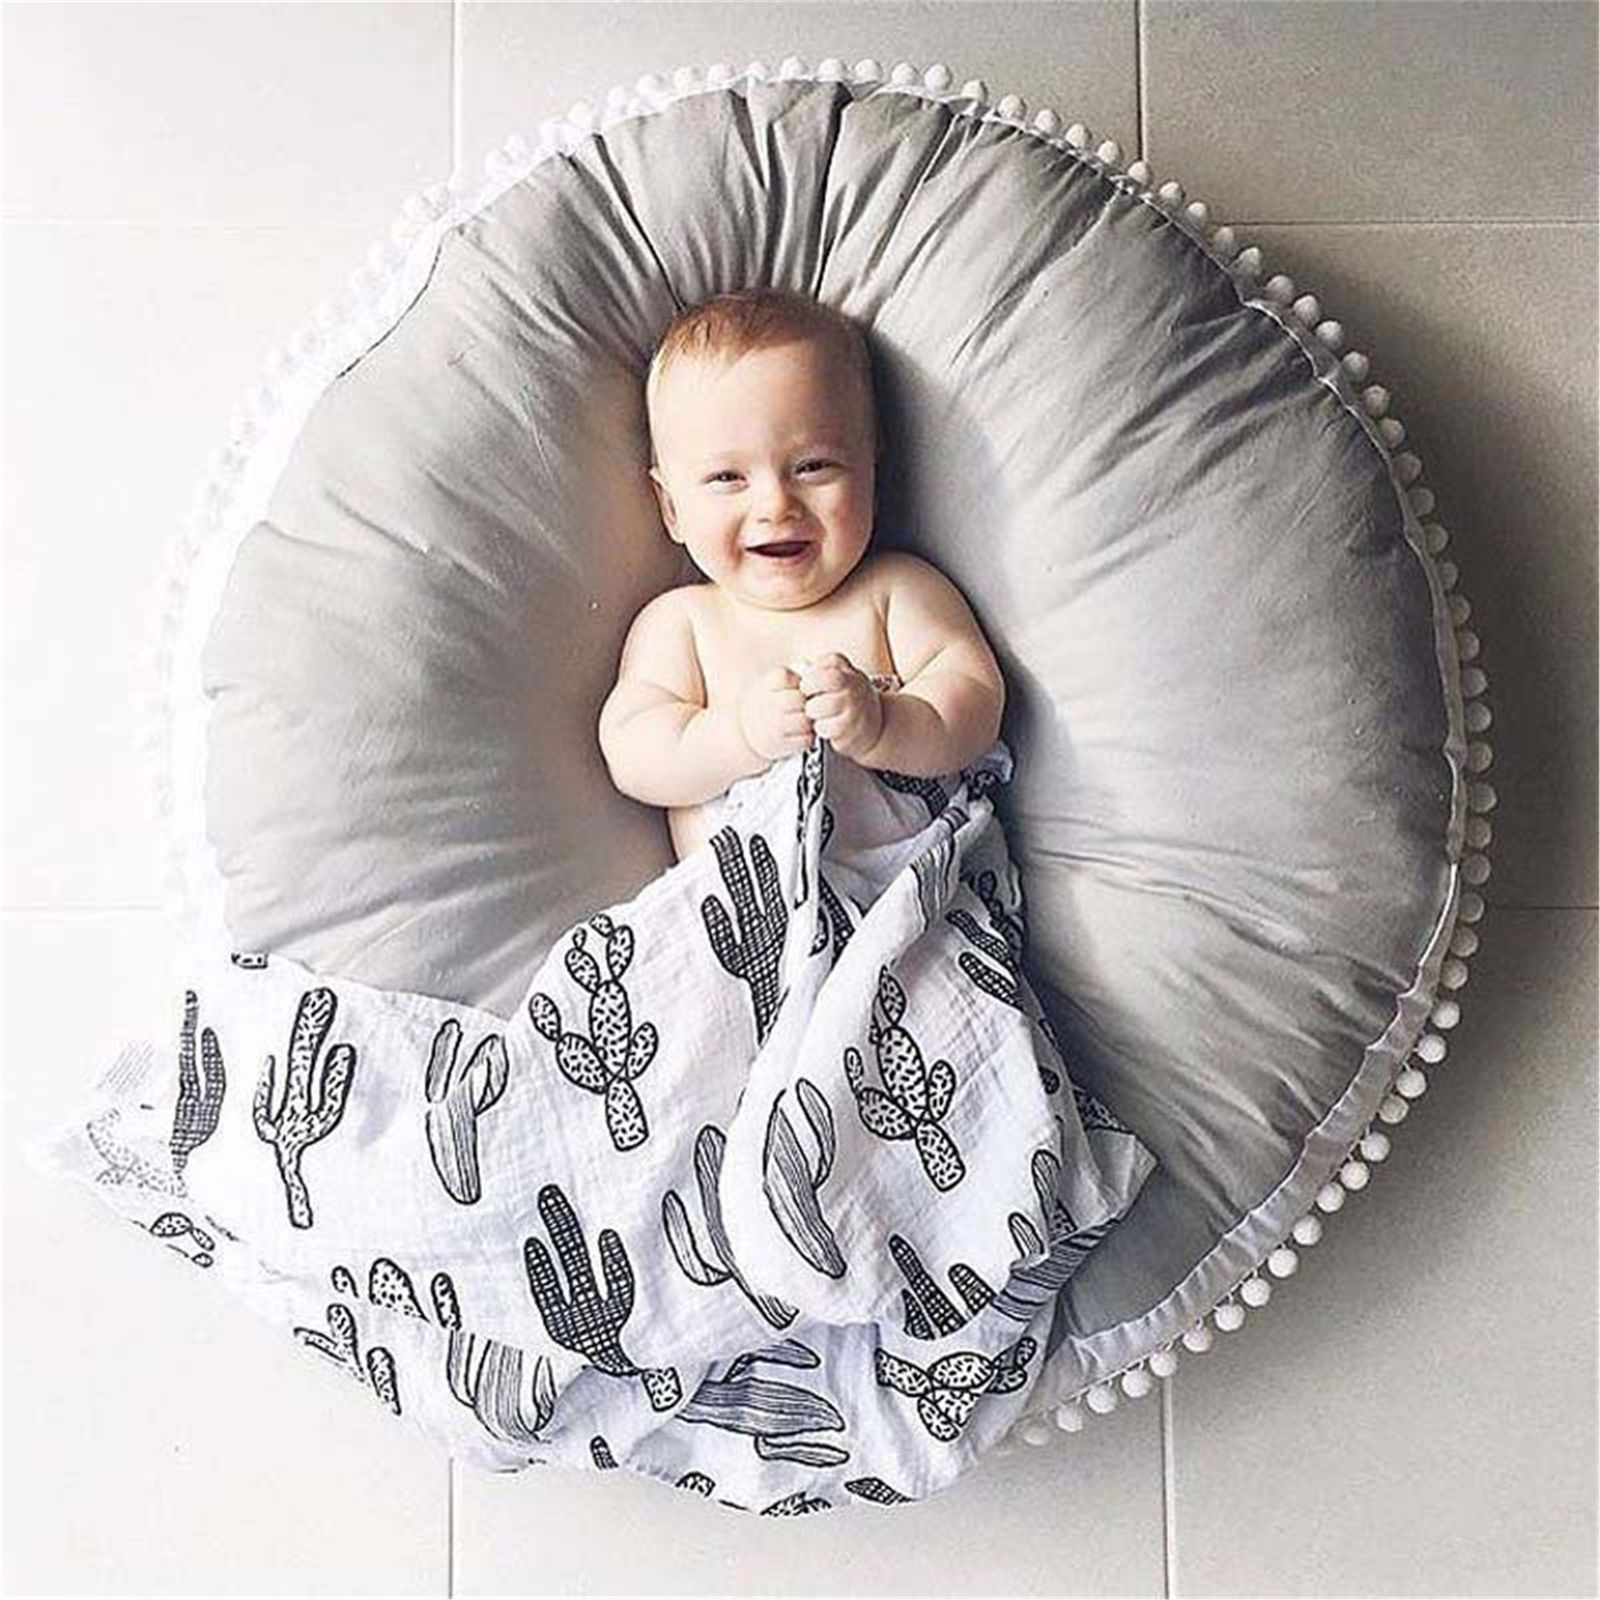 Nordic 2019 Baby bean bag chair Cotton Round Soft Play Mats Crawling Pad Play Game Mat Home Children Kids Room Decor 90*90cm